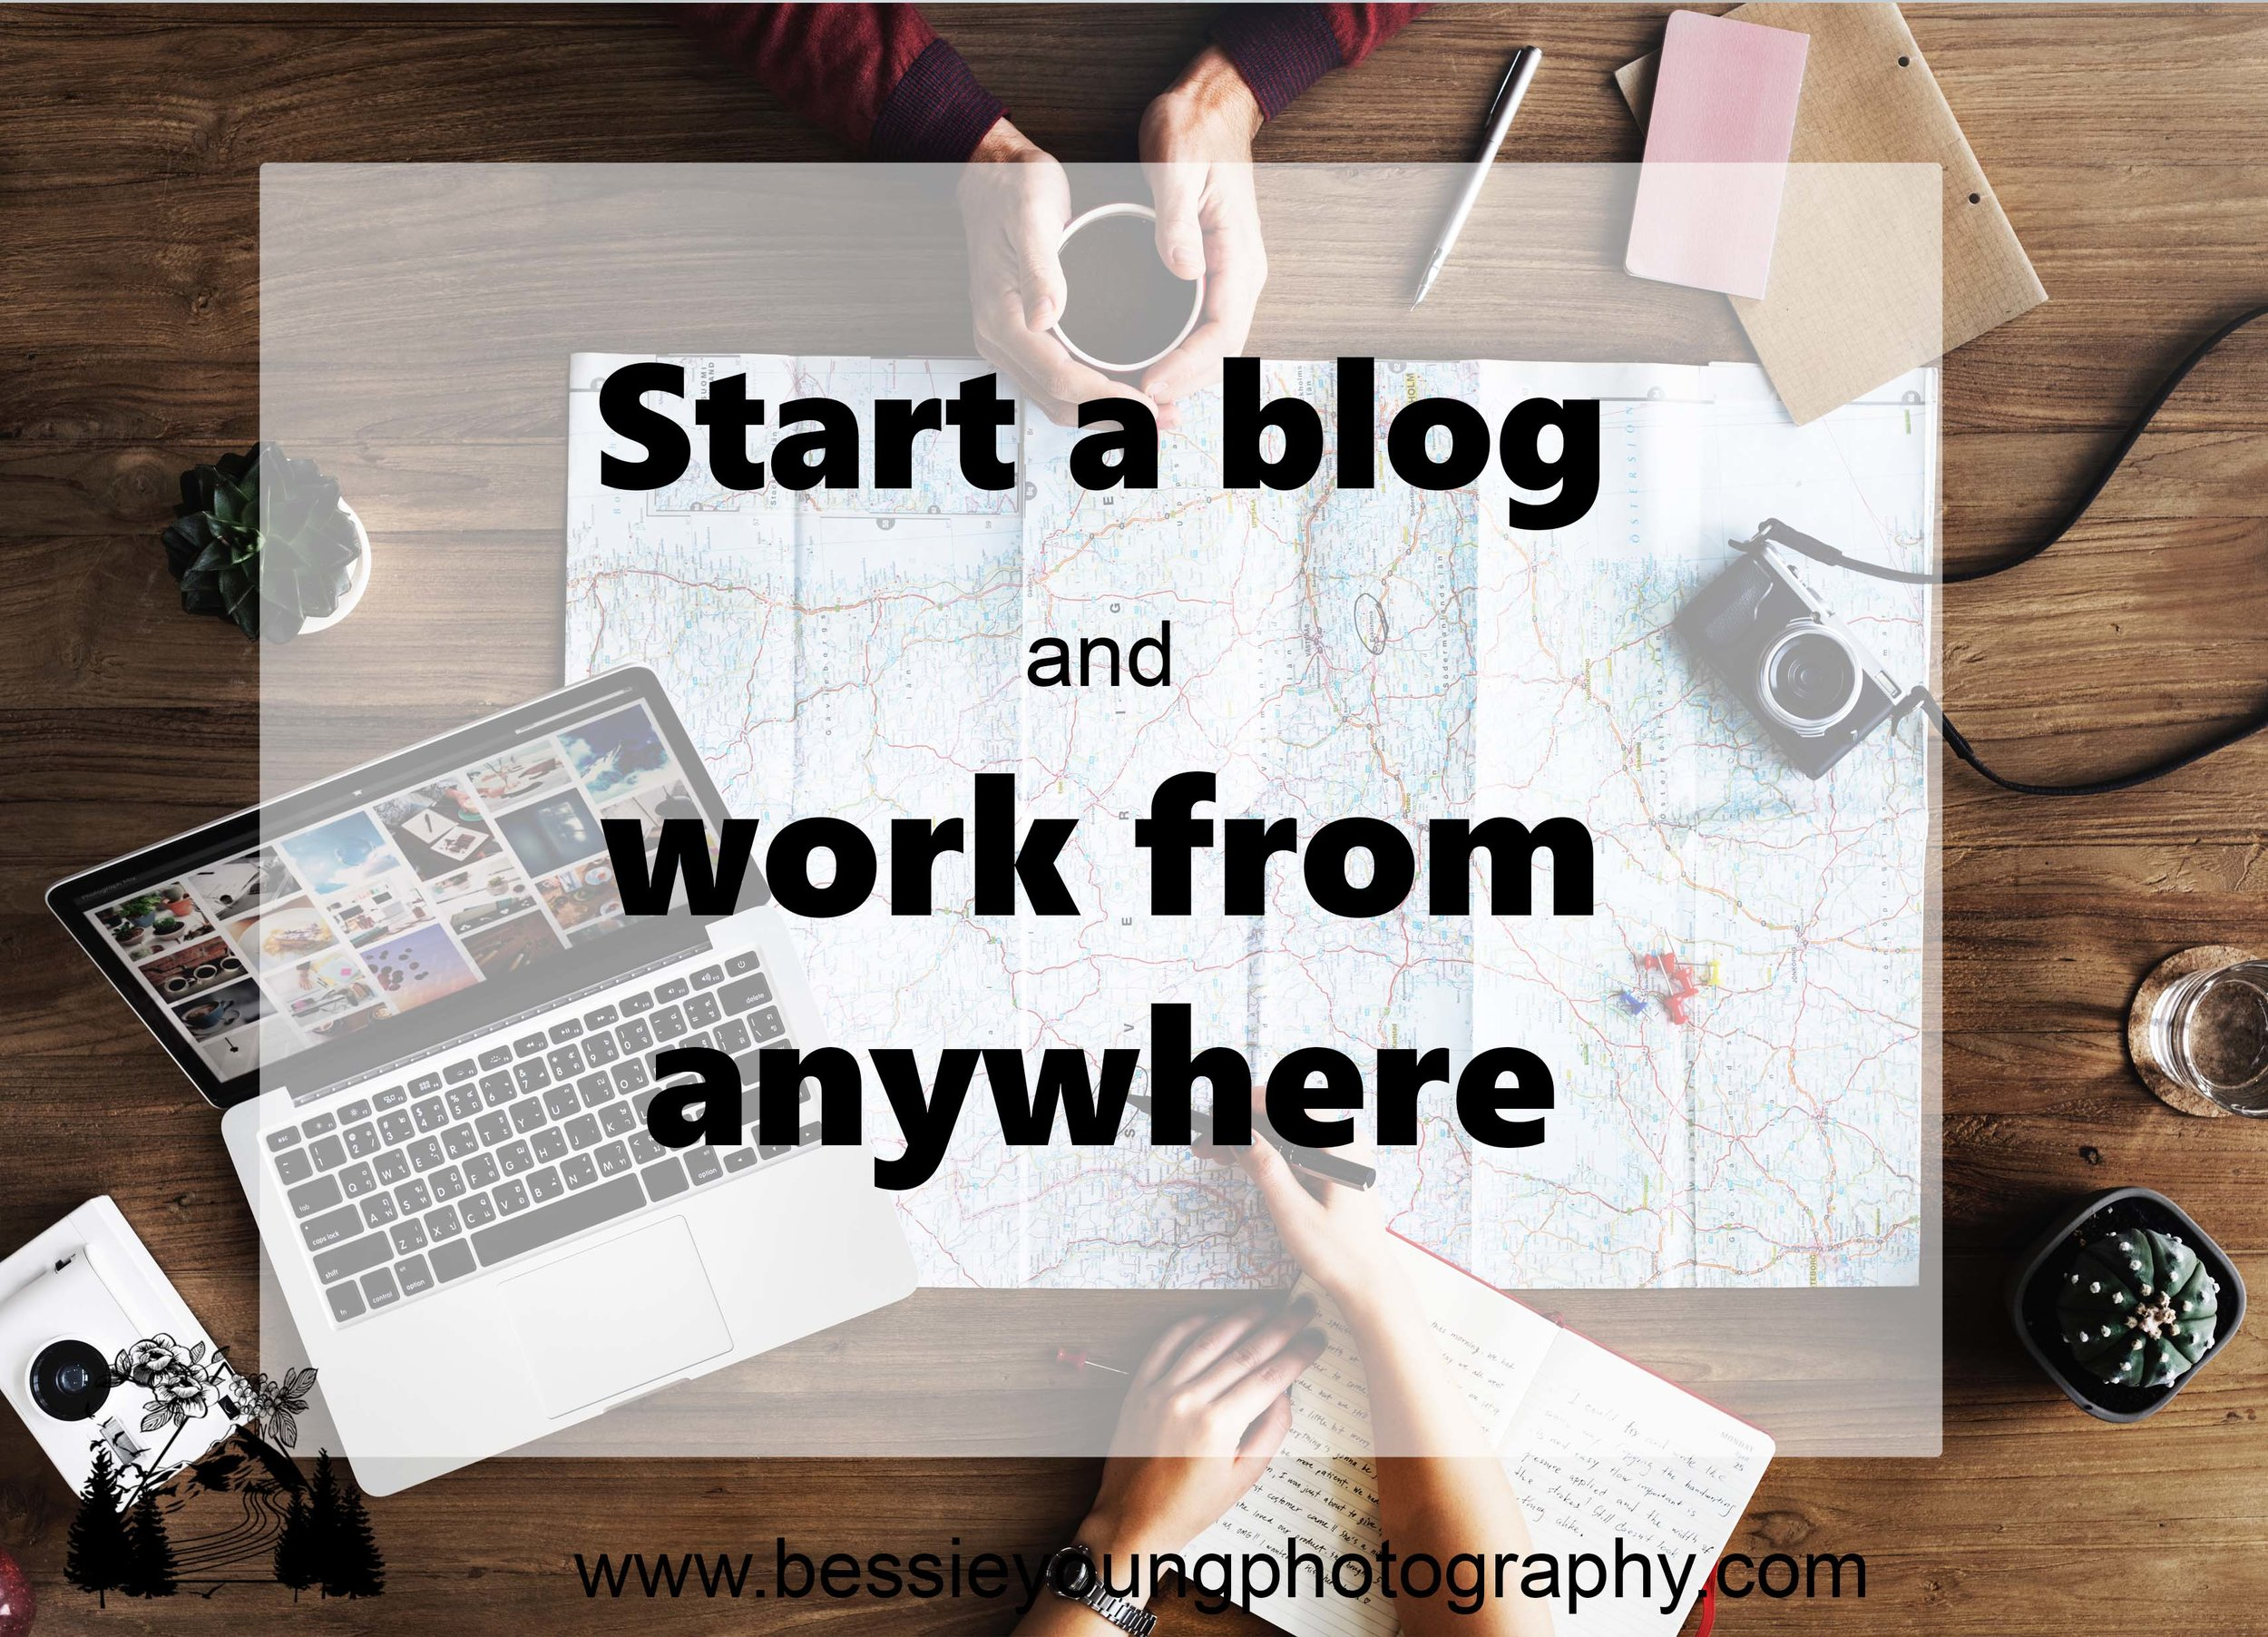 Start a blog and work from anywhere by Bessie Young Photography.jpg